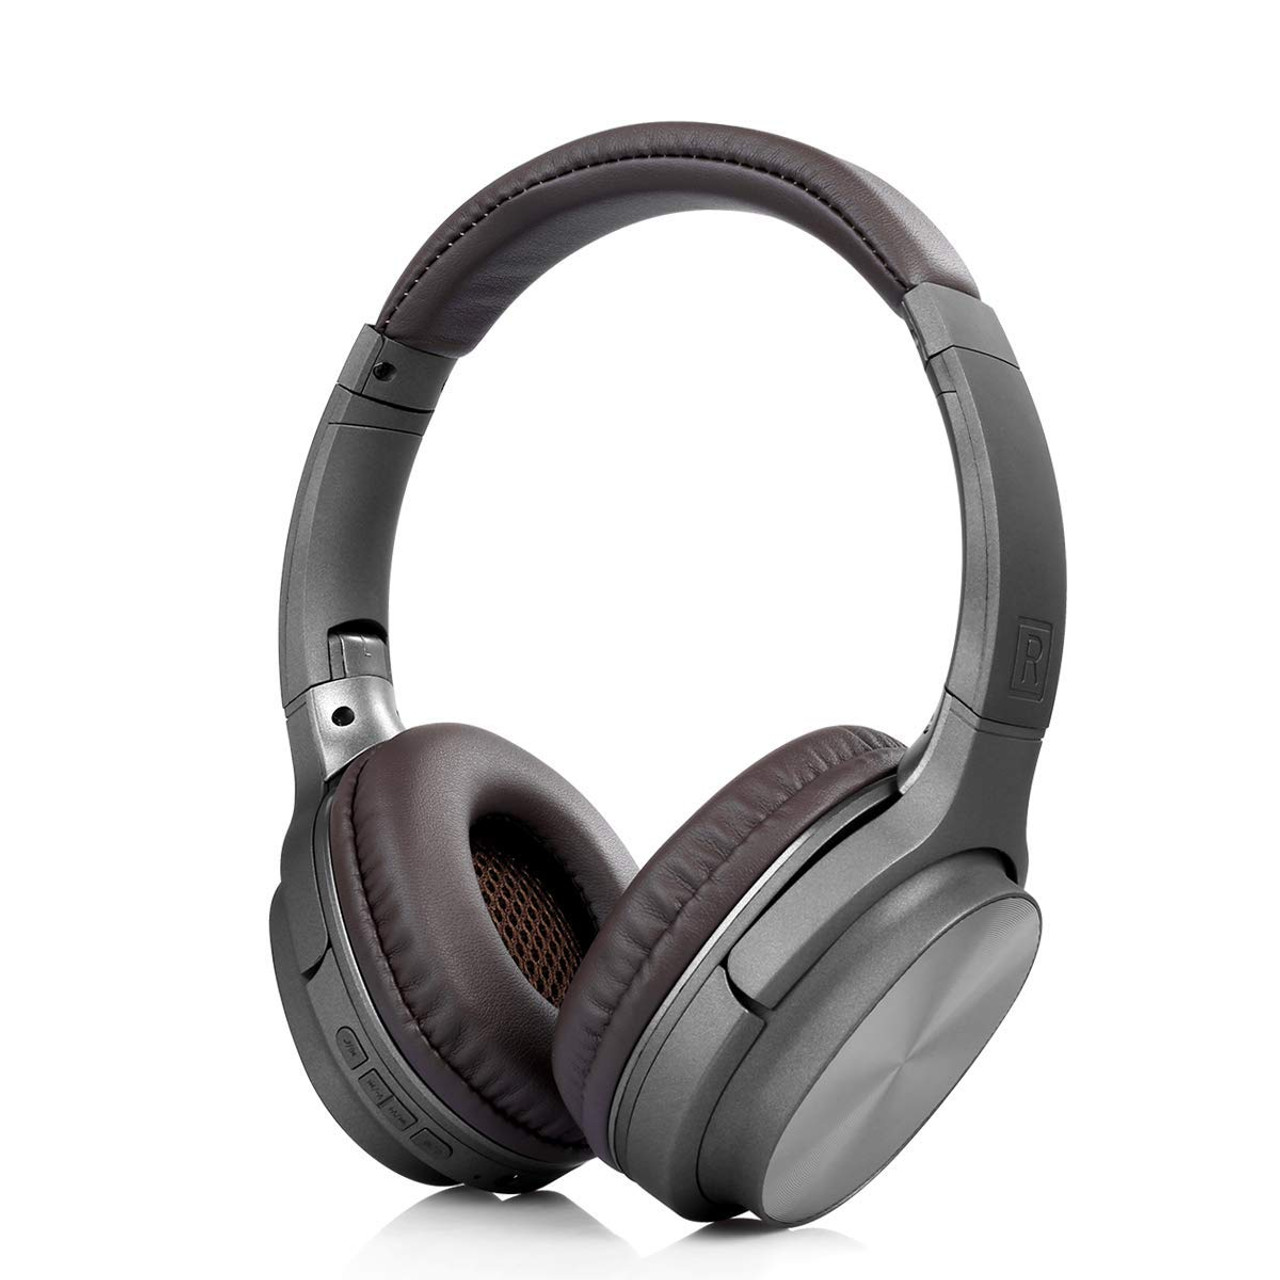 DRUMS Wireless AZ17 Over The Ear Noise Cancellation HD Sound Extra Bass 3D Stereo Bluetooth Headphones with inbuilt mic and Memory Card Drive